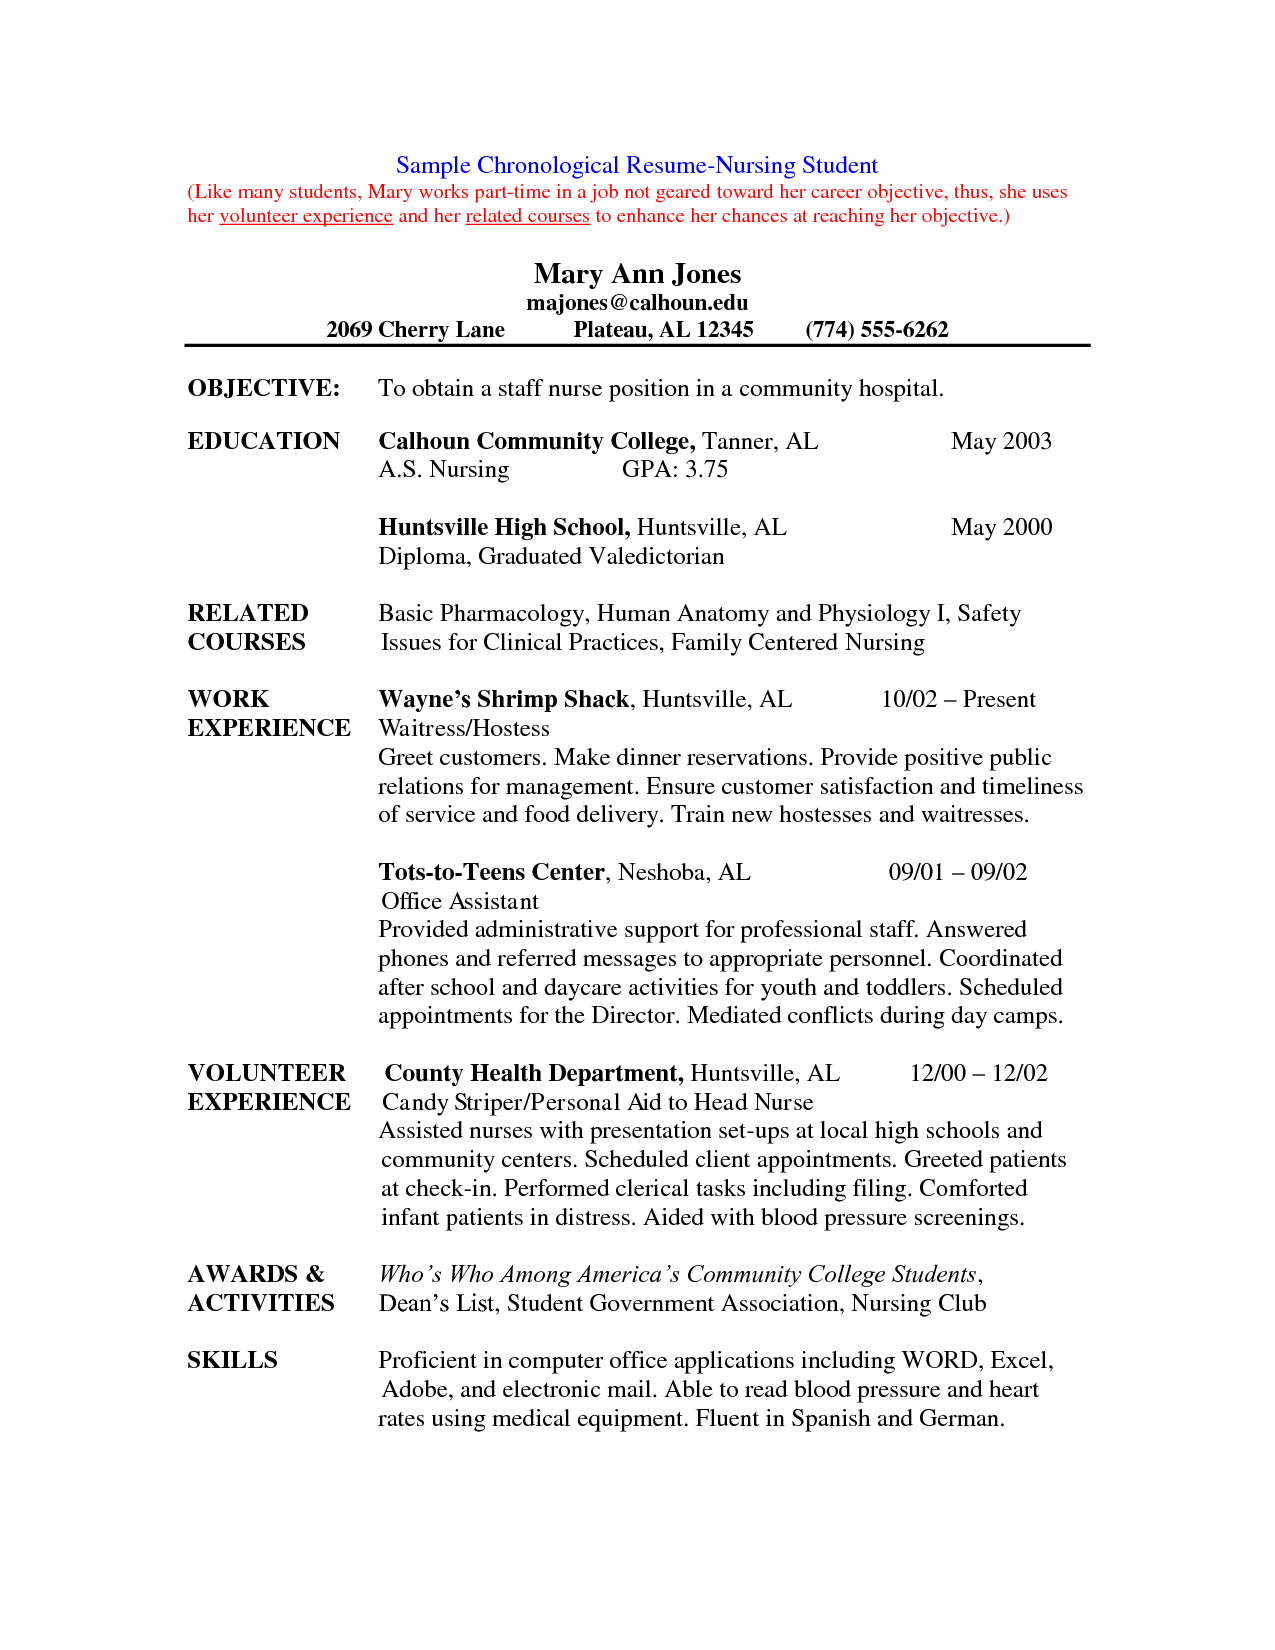 Nursing Student Resume Template HDResume Templates Cover Letter Examples